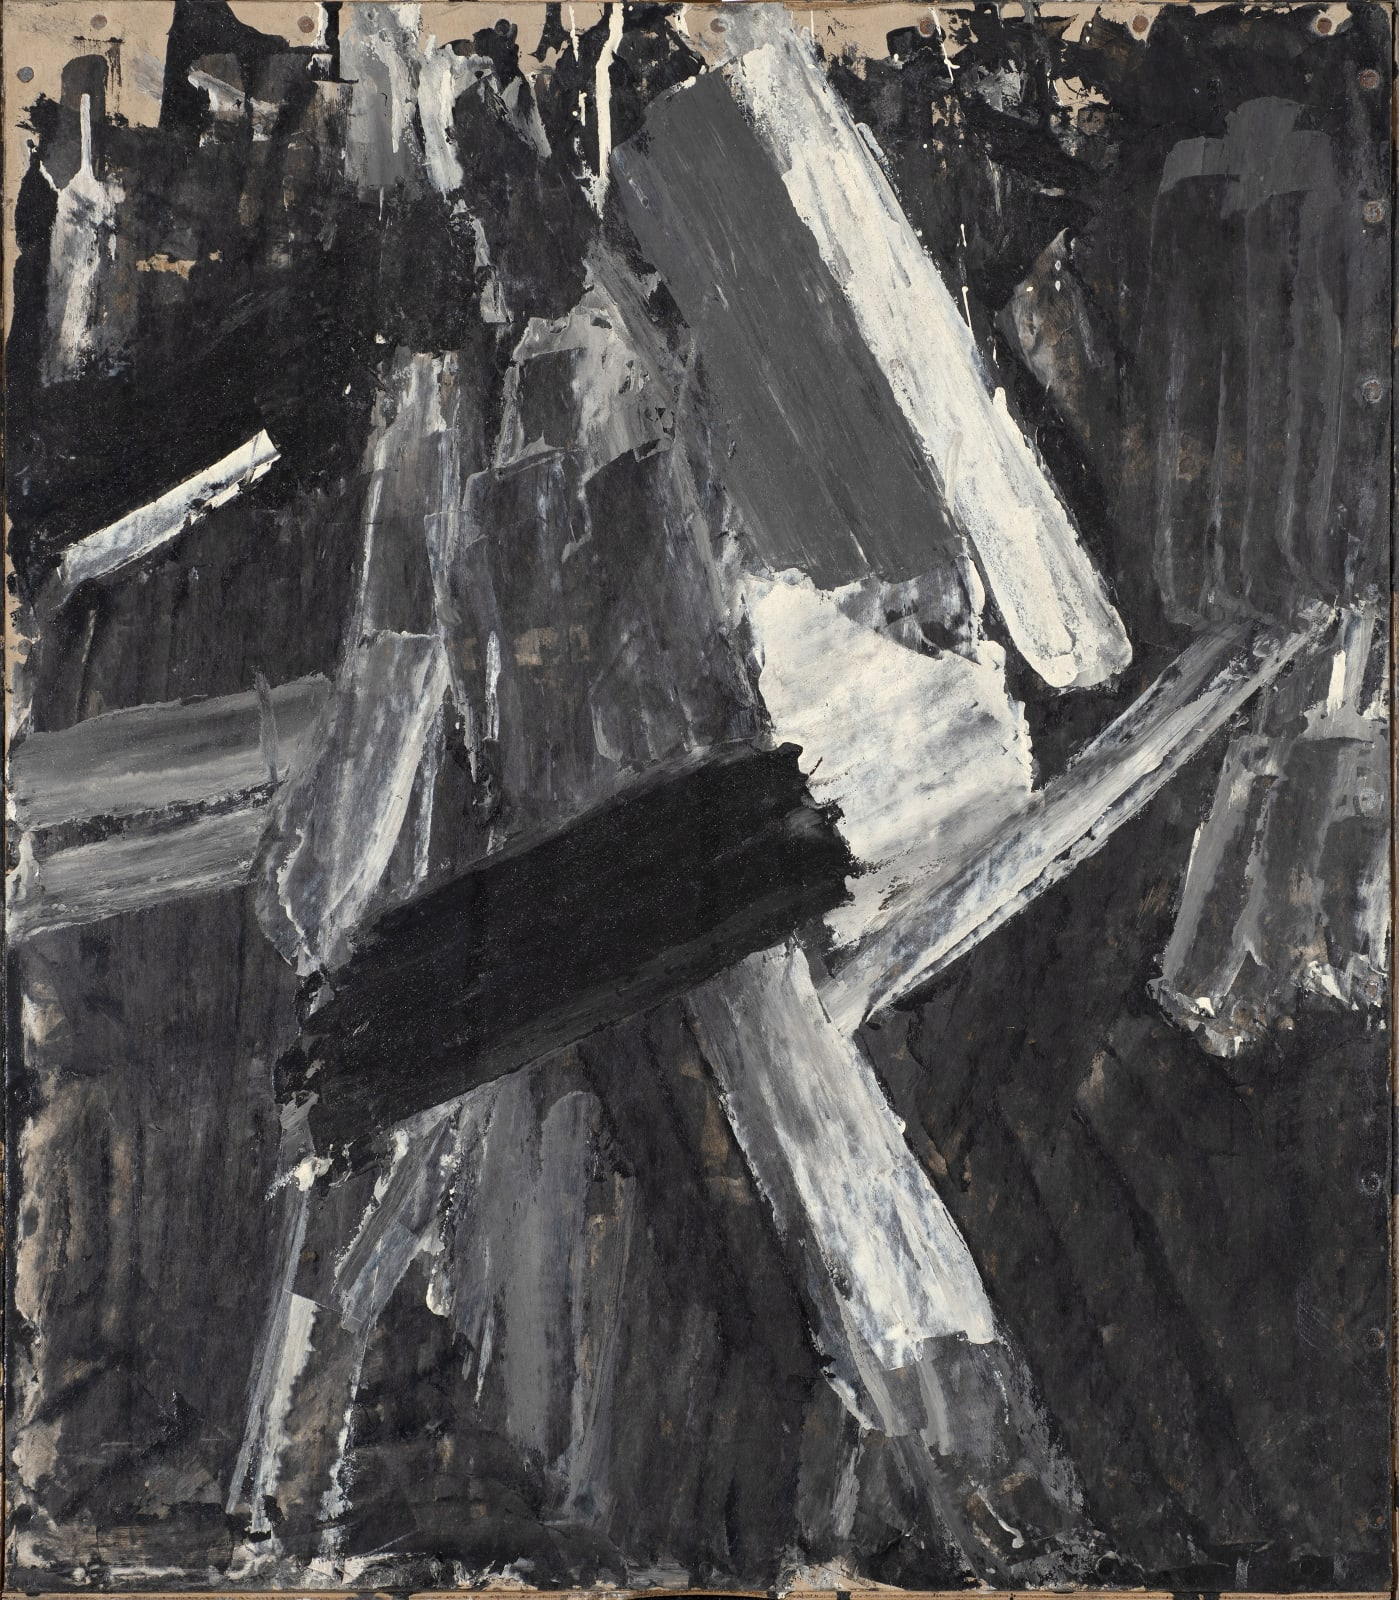 Painting on Cardboard, c. 1961-62 Oil on board 68 x 59cm The Gustav Metzger Foundation